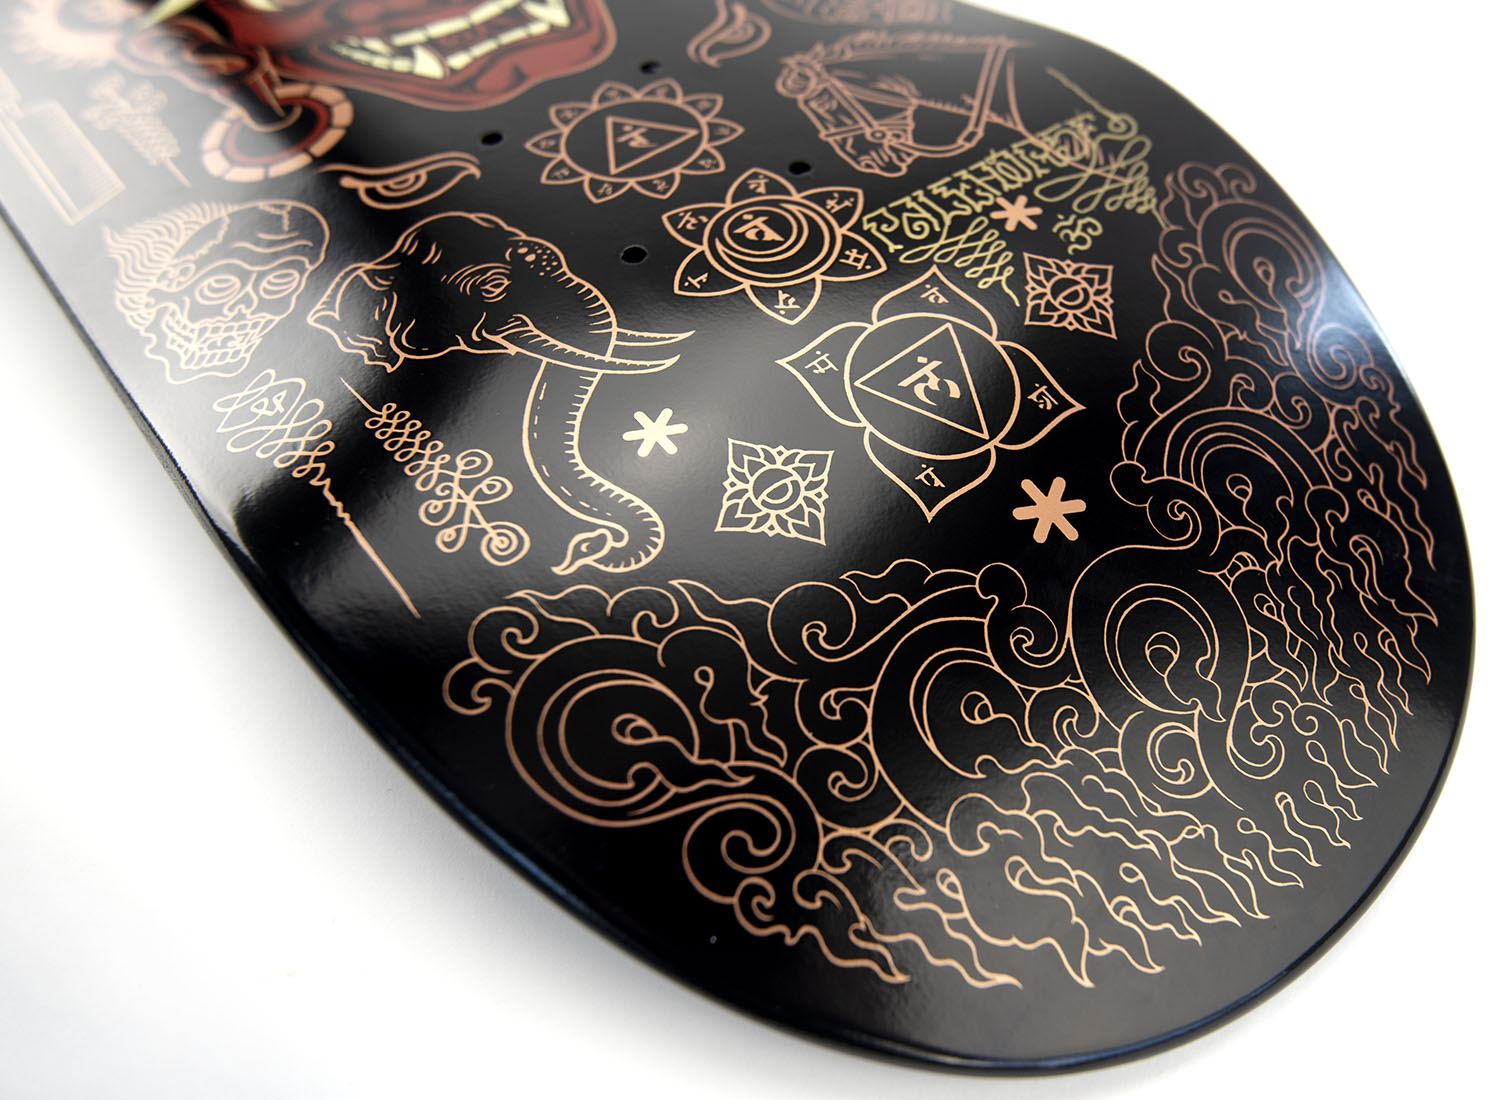 Skate Deck Art: 'Yama - King of Death' Rose Gold Variant